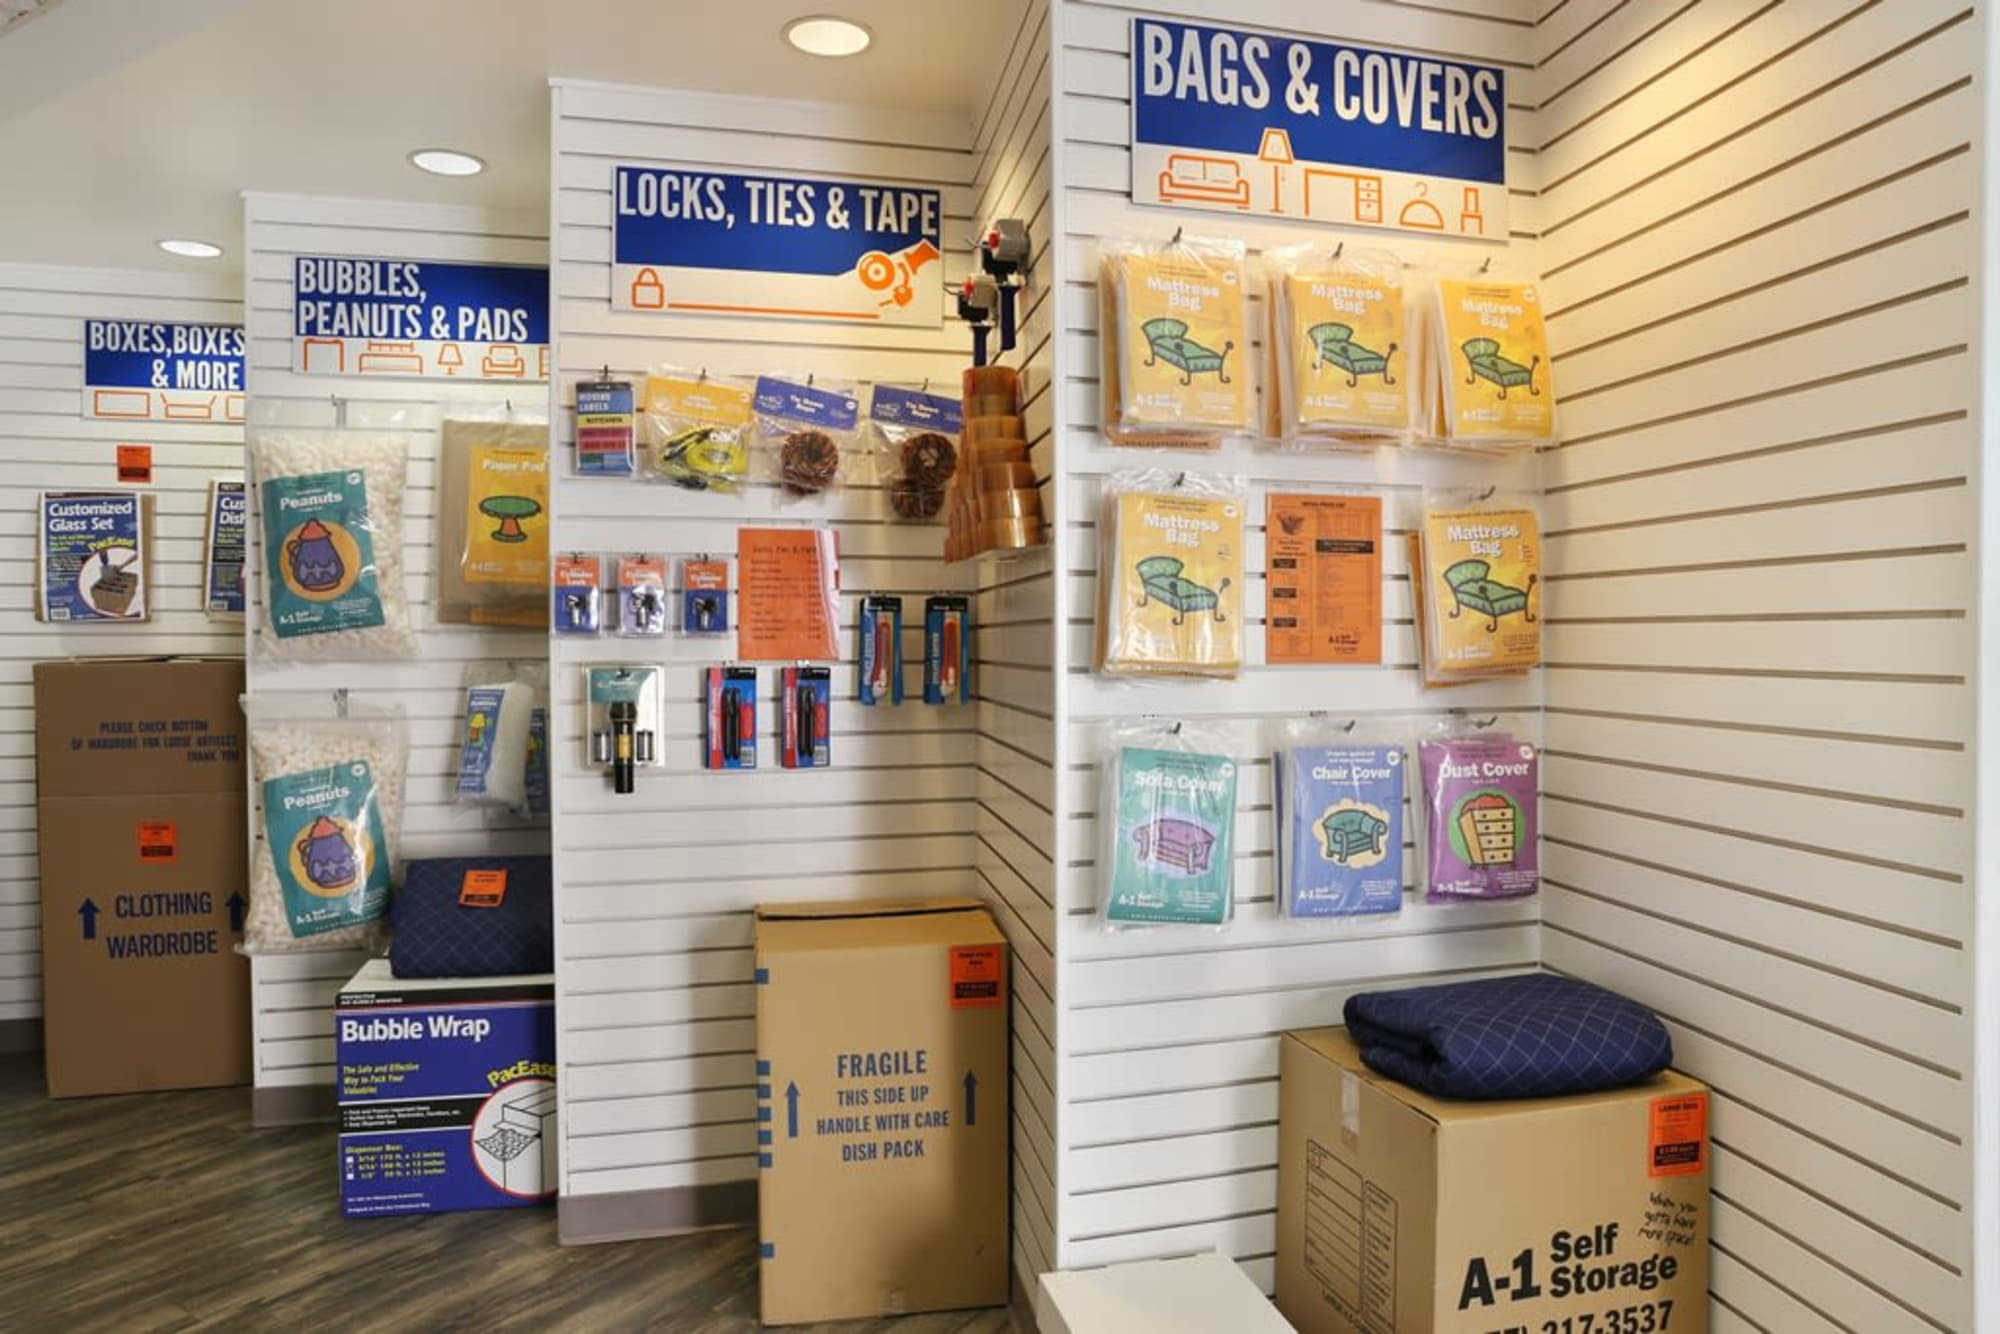 Packing and storage supplies at A-1 Self Storage in Torrance, California